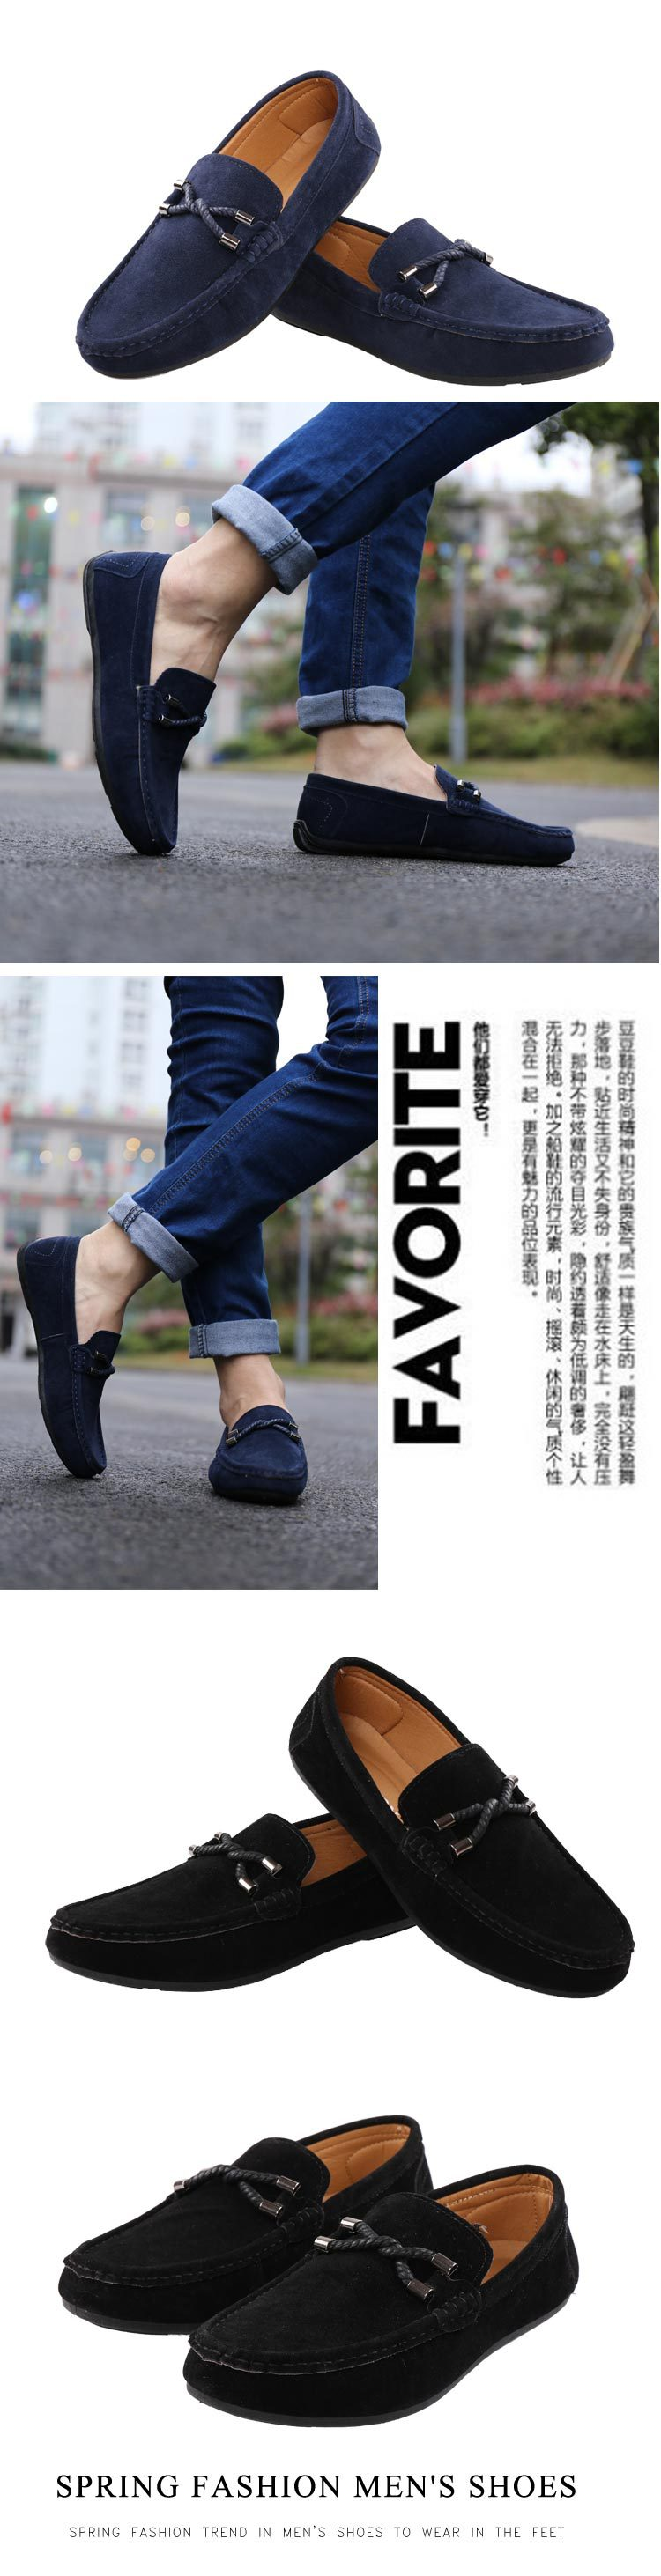 HTB109moUwHqK1RjSZFPq6AwapXaU UPUPER Spring Summer NEW Men's Loafers Comfortable Flat Casual Shoes Men Breathable Slip-On Soft Leather Driving Shoes Moccasins